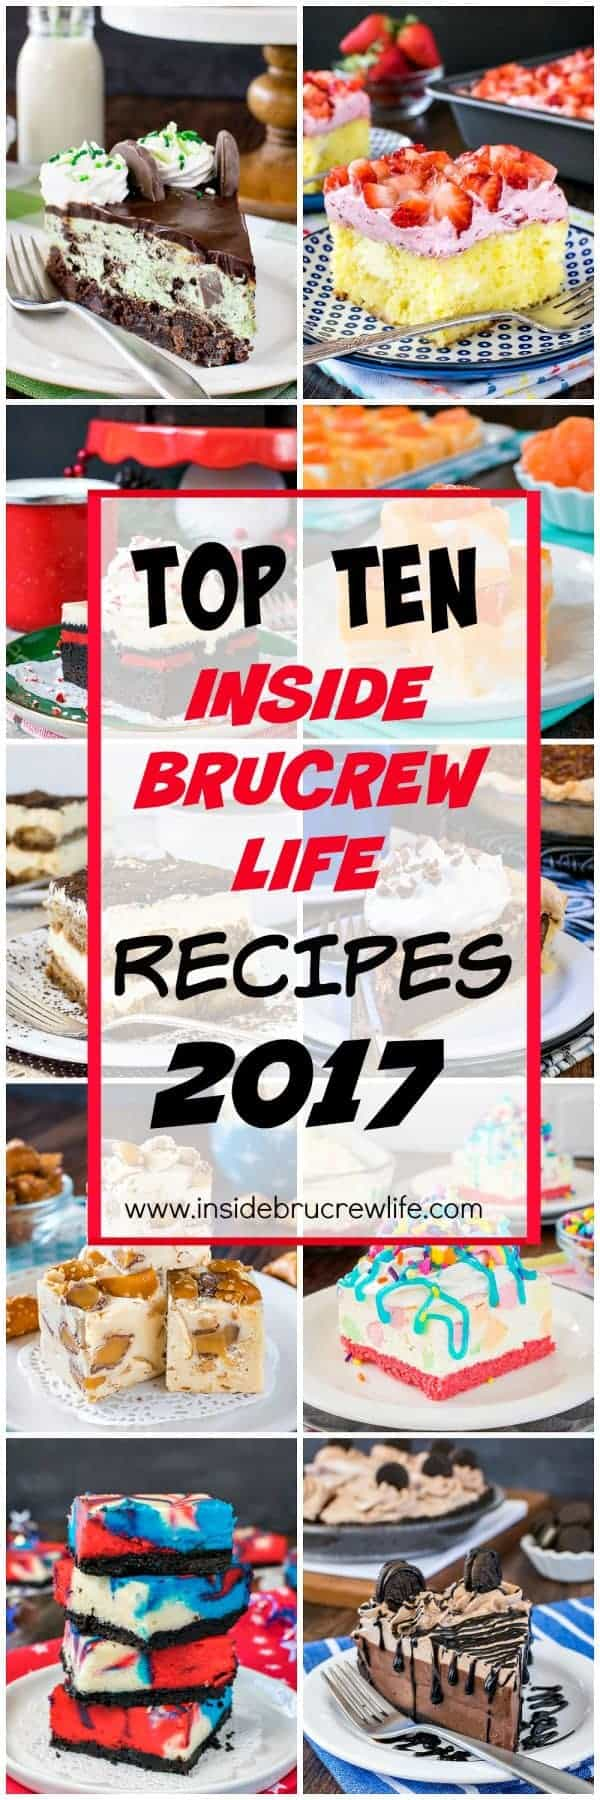 Top Ten BruCrew Life Recipes from 2017 - the top 10 dessert recipes from this year in one place. Easy desserts that look and taste amazing are perfect for any party!